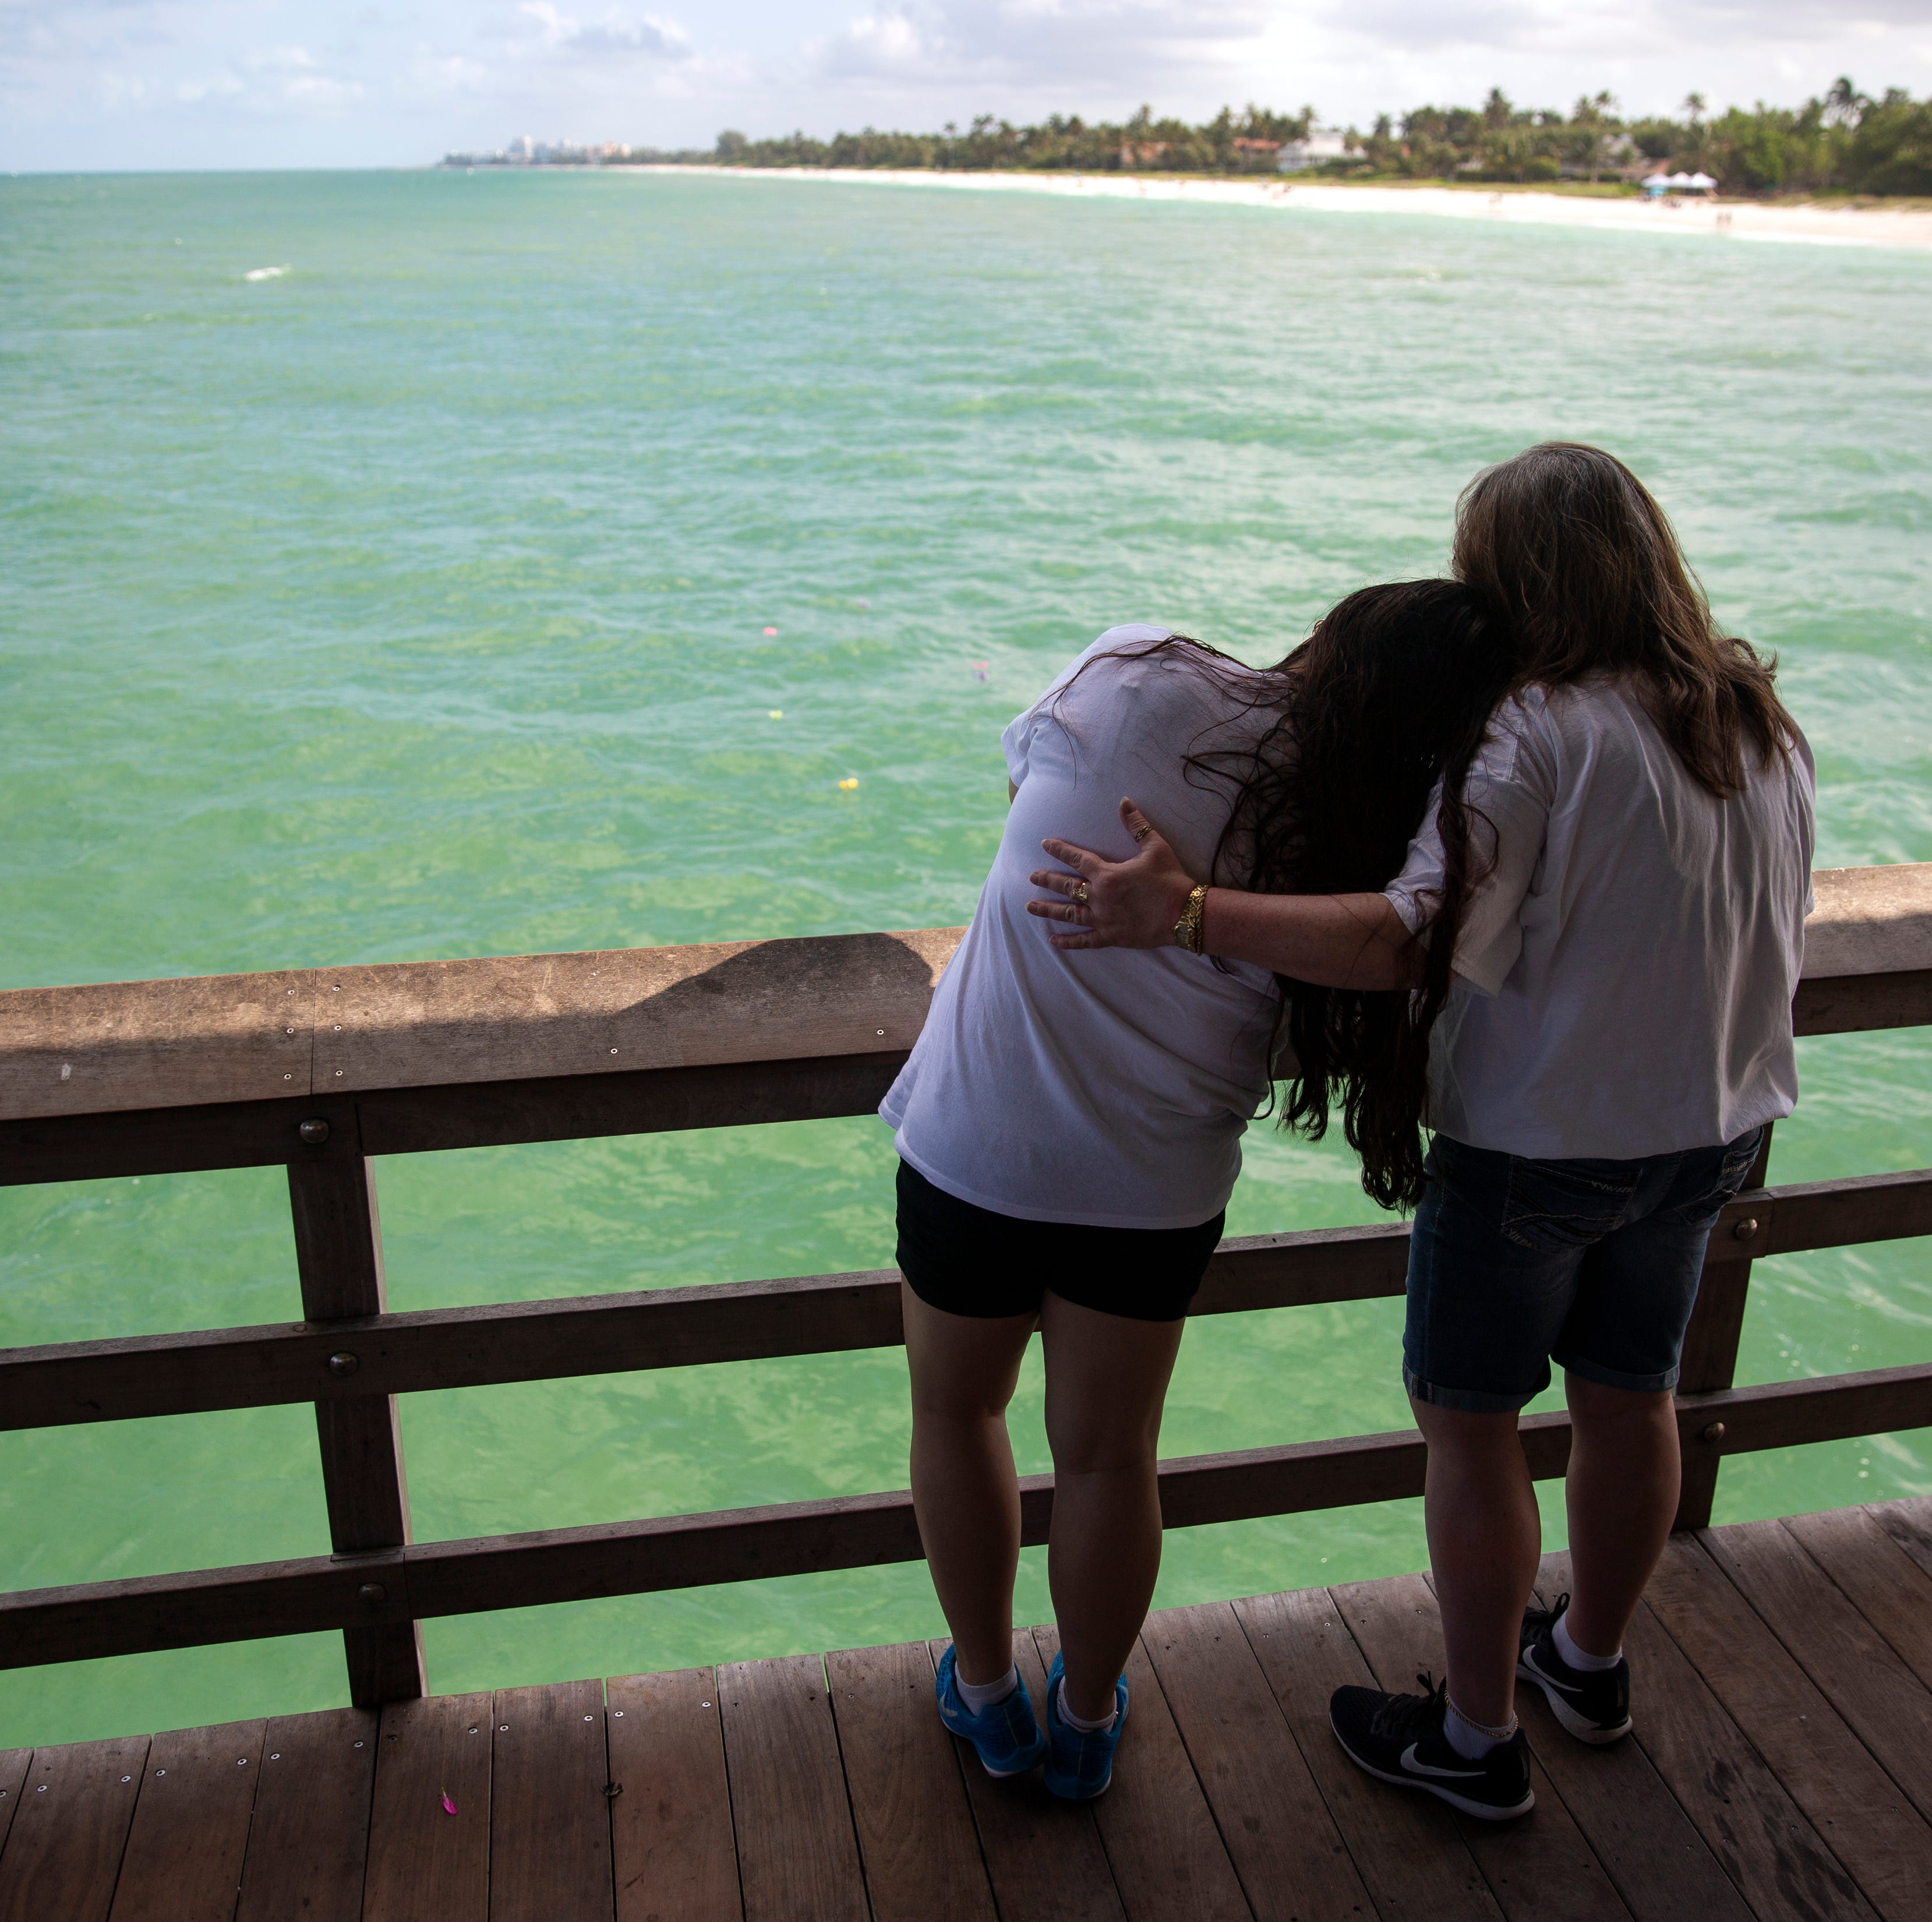 Mother's Day a heartbreaking remembrance for a few at Naples Pier